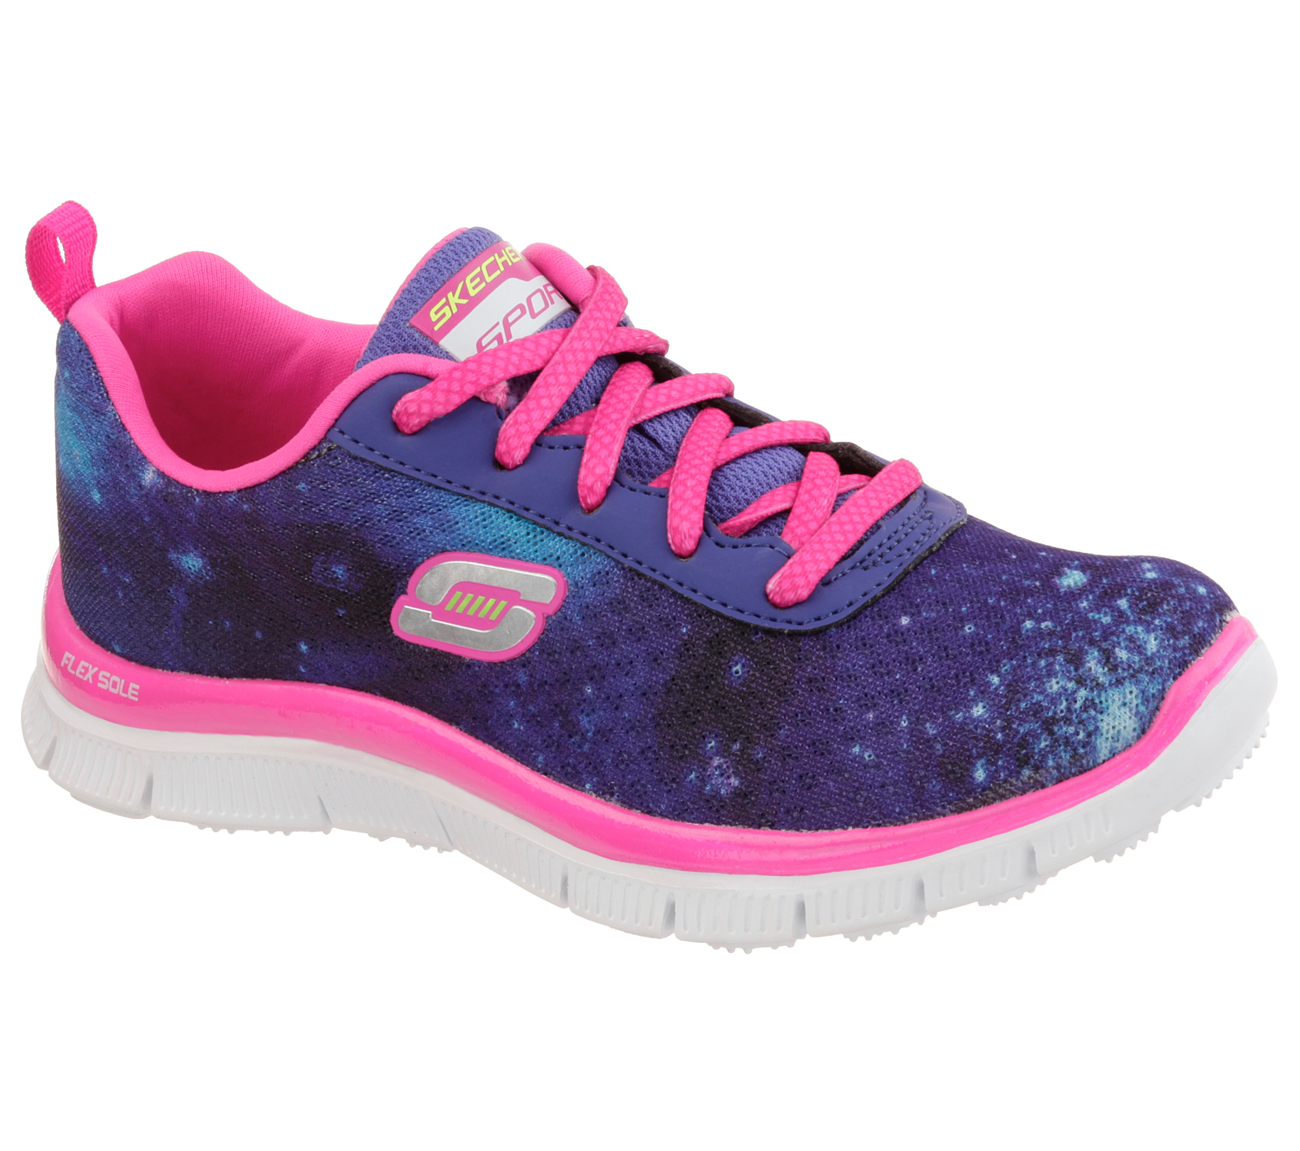 Purple Shoes Kids Trianers Size